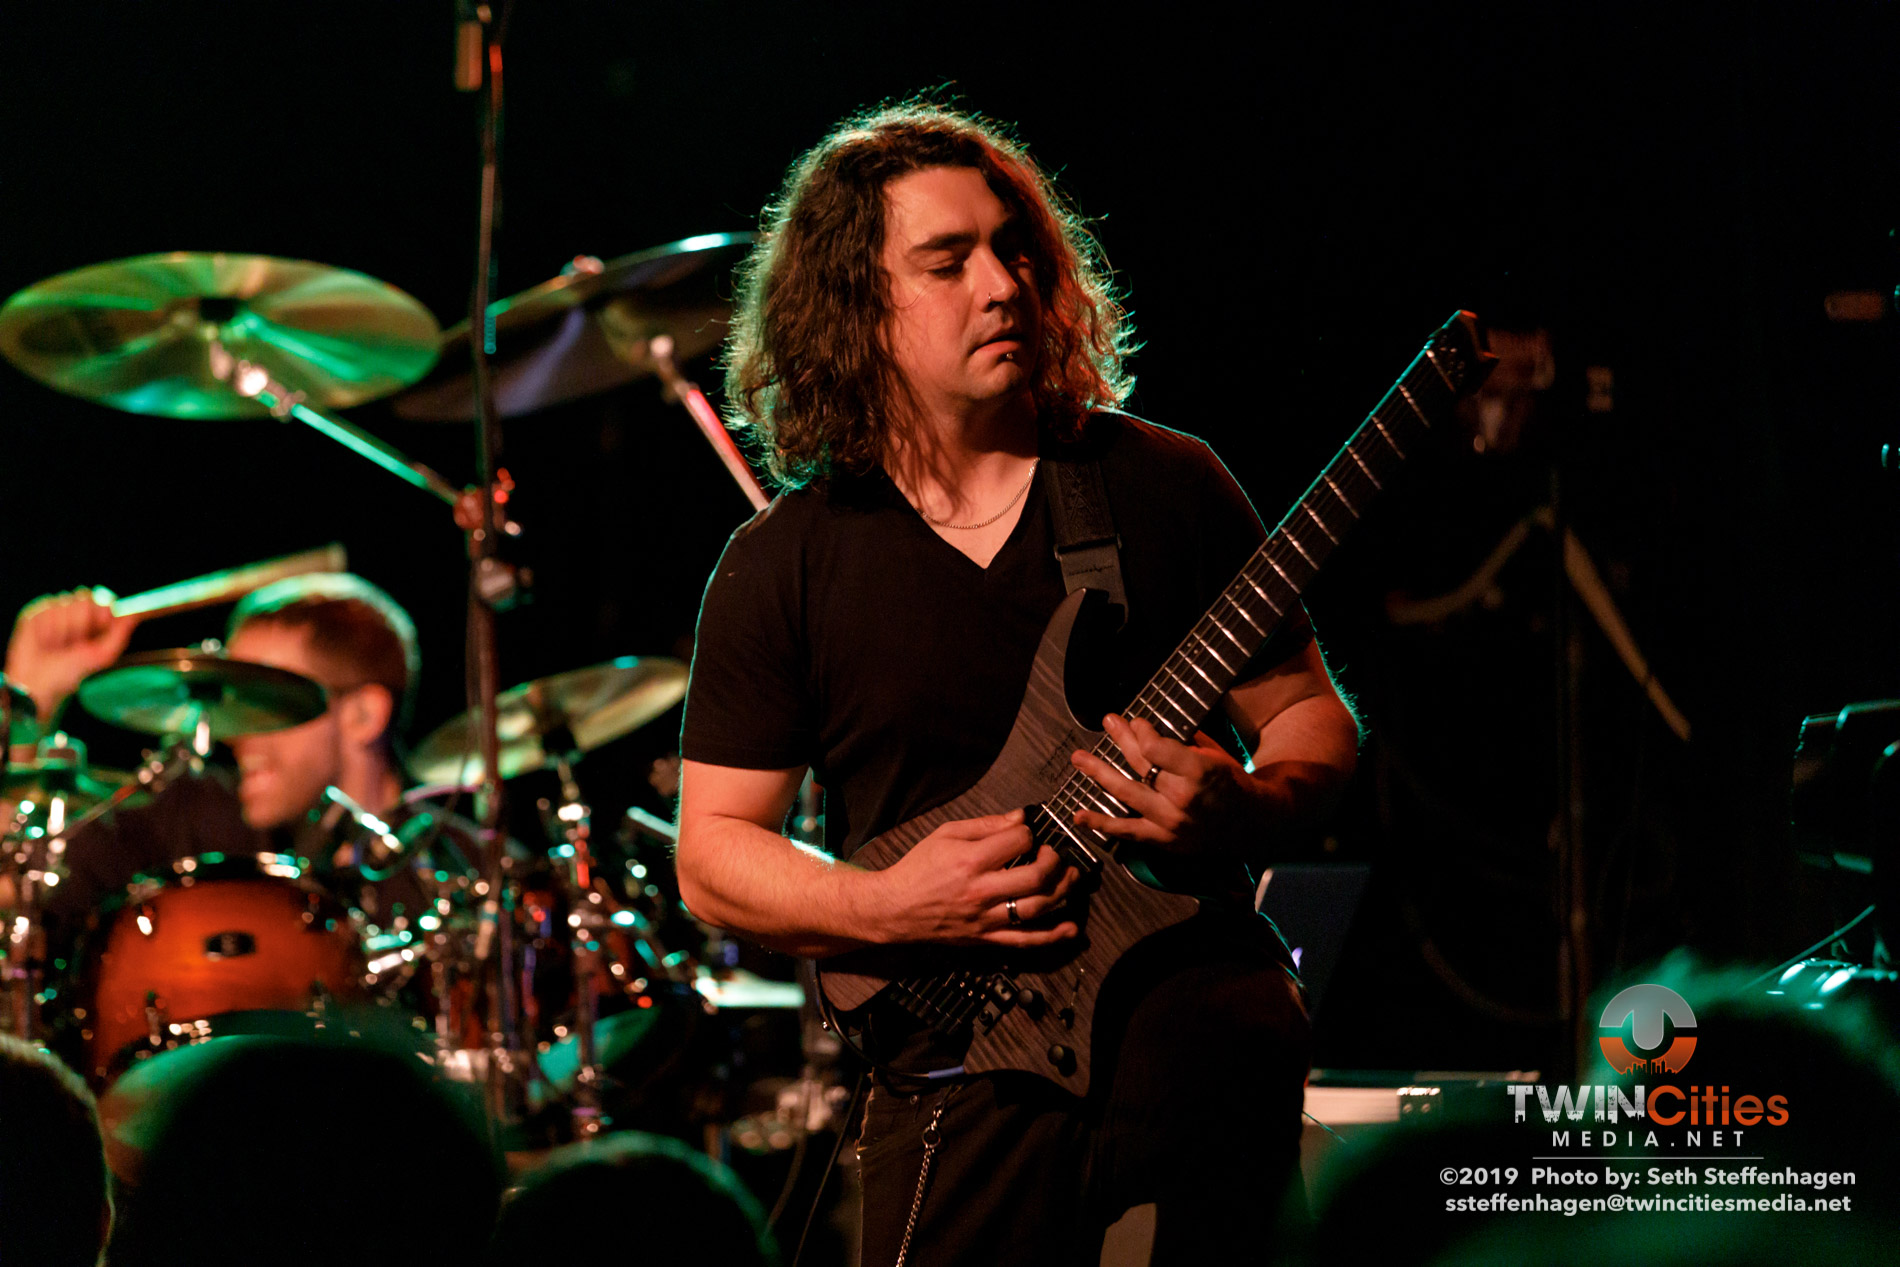 October 5, 2019 - Minneapolis, Minnesota, United States -  Gone In April live in concert at The Cabooze opening for Eluveitie + Korpiklaani.  (Photo by Seth Steffenhagen/Steffenhagen Photography)